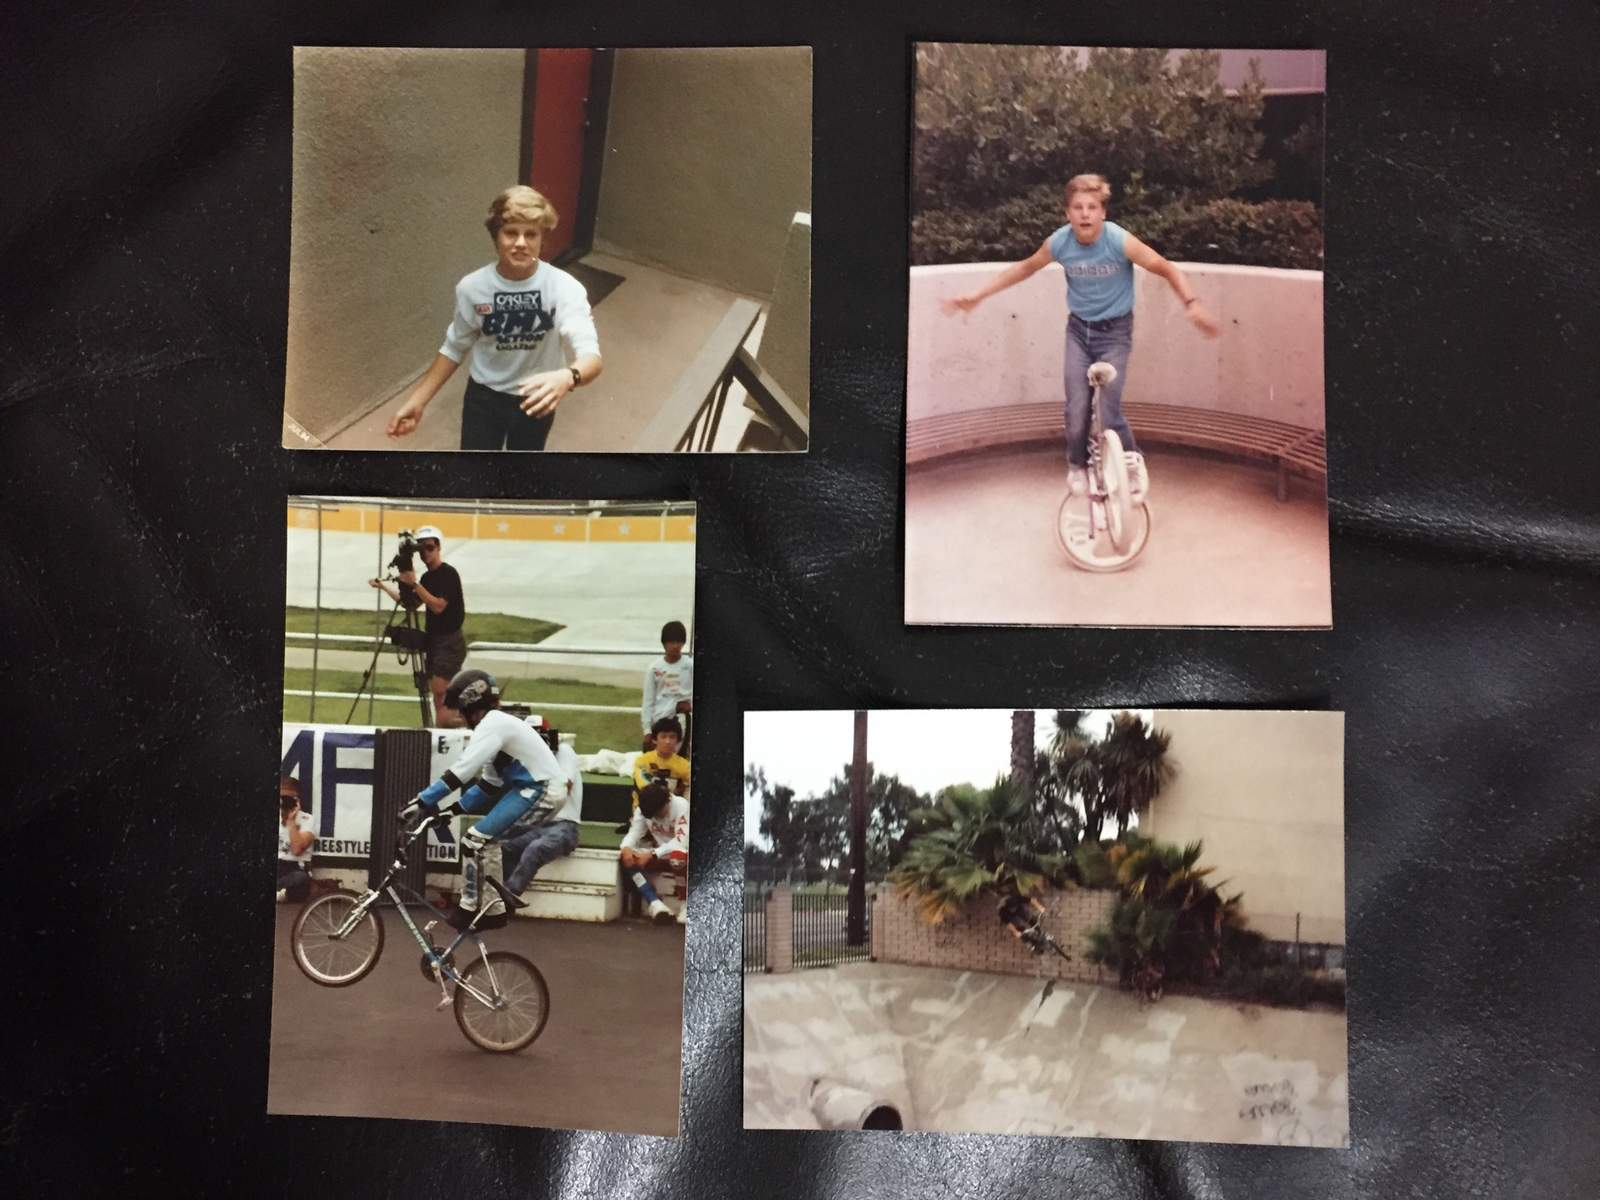 http://uploads.bmxmuseum.com/user-images/19713/dad620e1-9d20-4798-b3c9-abc822b151845c3a12039e.jpeg